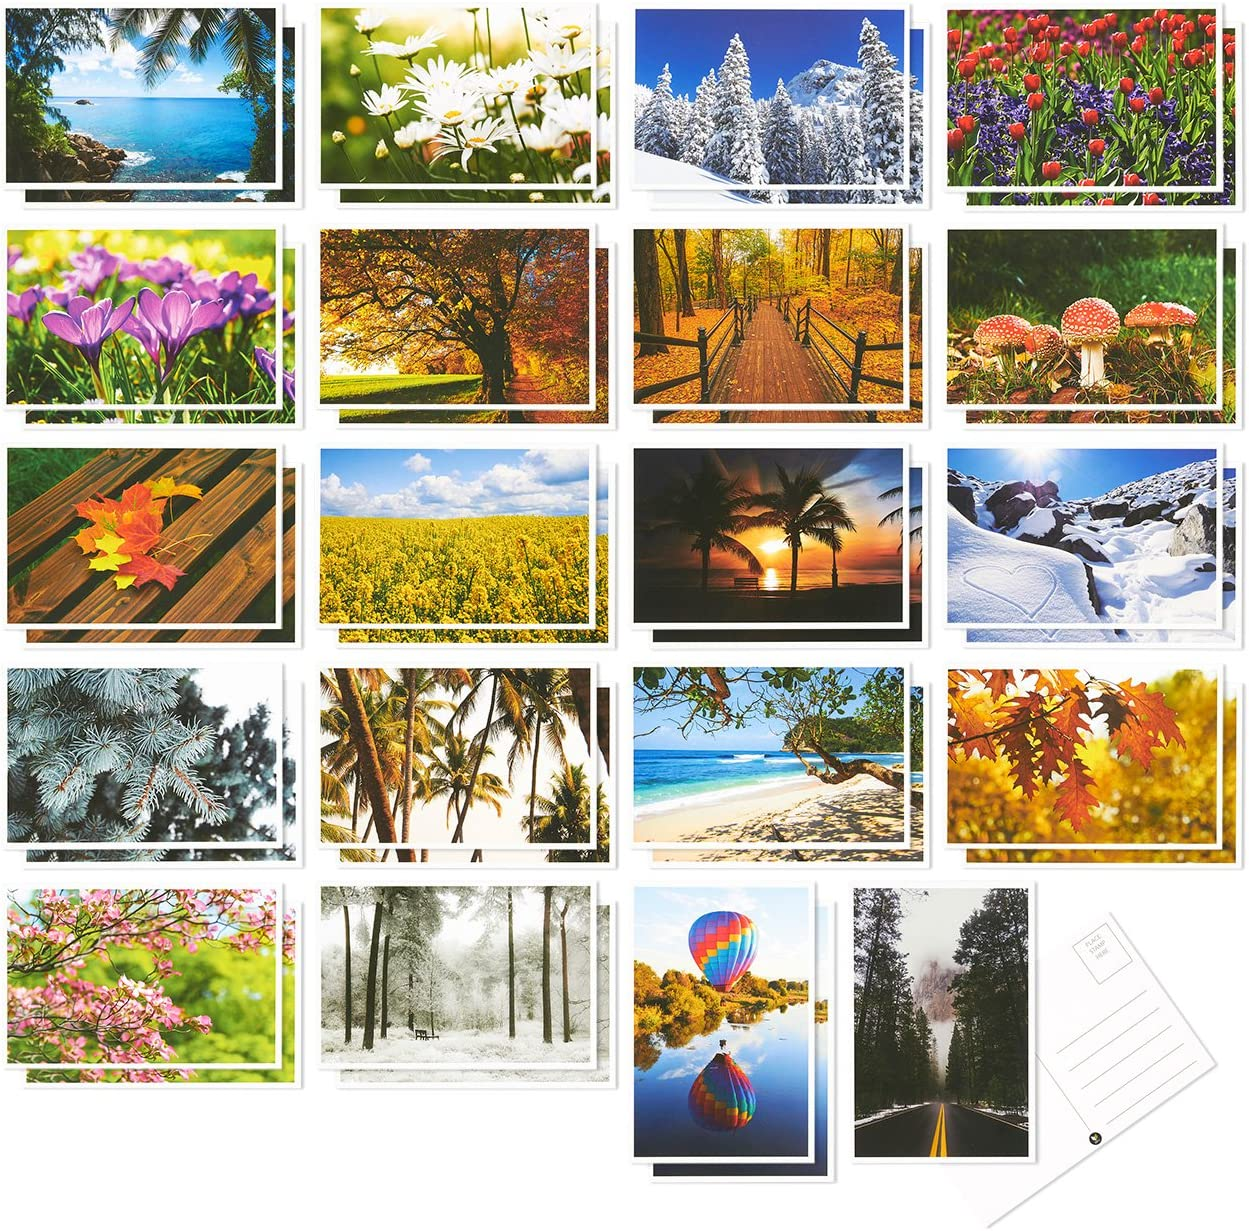 40 Pack Postcards - Four Seasons Postcards Print Variety Pack - Fall, Autumn, Winter, Summer, Spring Theme Self Mailer Postcards with Mailing Side - 20 Picture Designs Postage Saver - 4 x 6 Inches